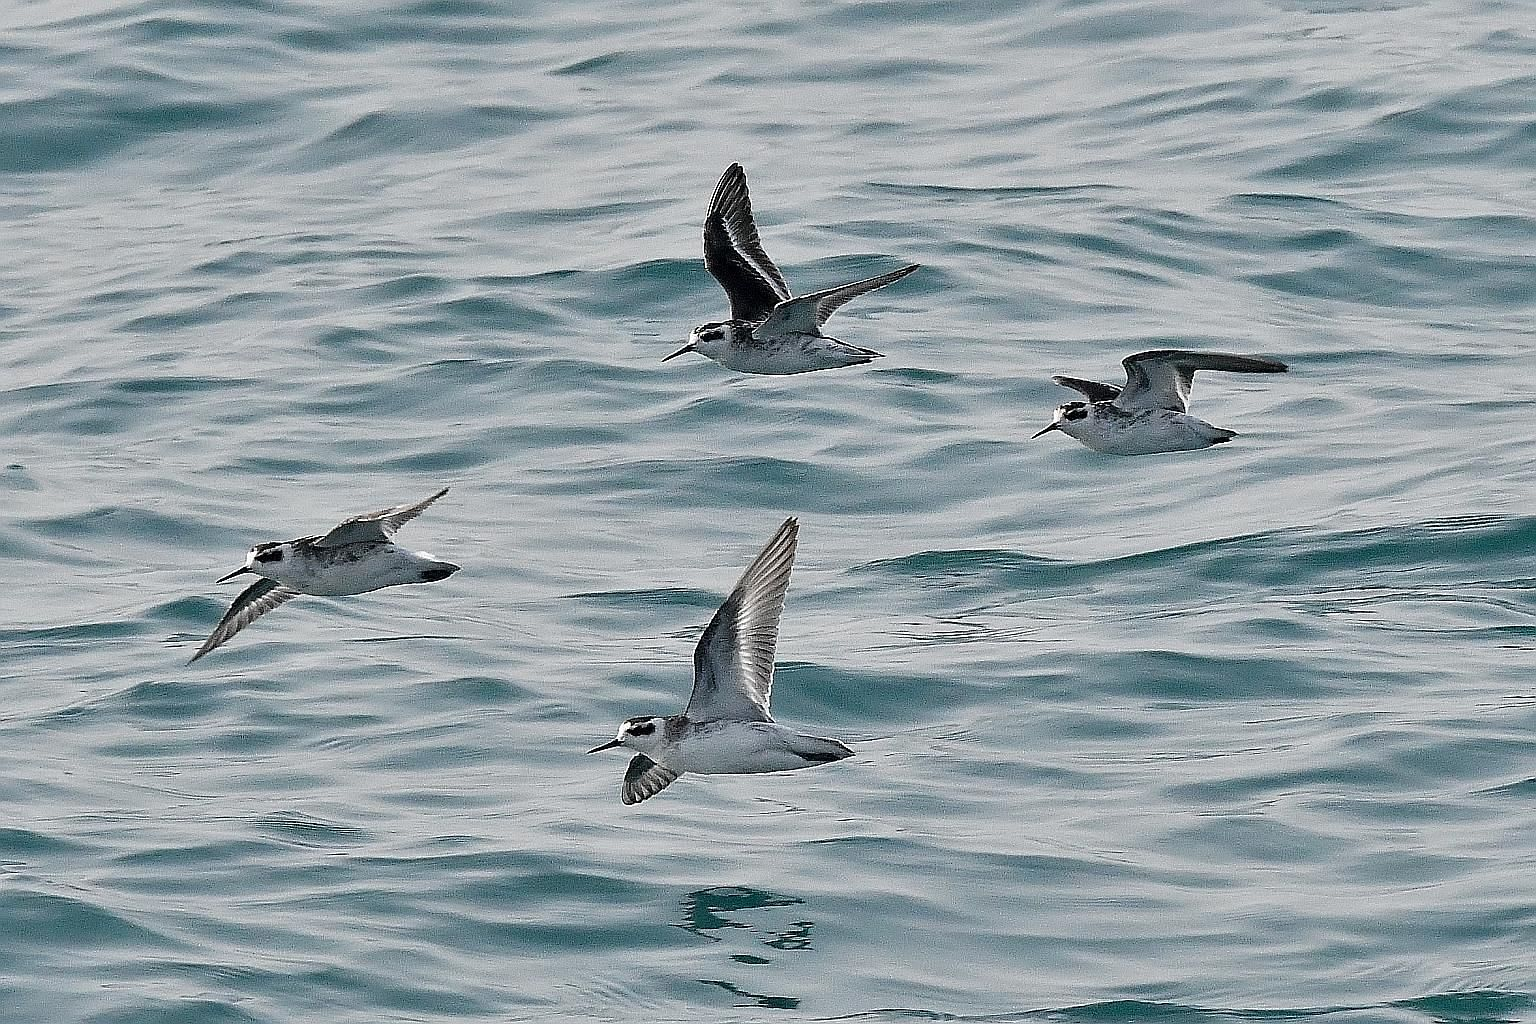 Birdwatchers taking part in the Nature Society (Singapore) Bird Group's pelagic seabird survey at the start of the bird migration season last September. The birds are set to make their way back north from around April. ST PHOTO: LIM YAOHUI The common